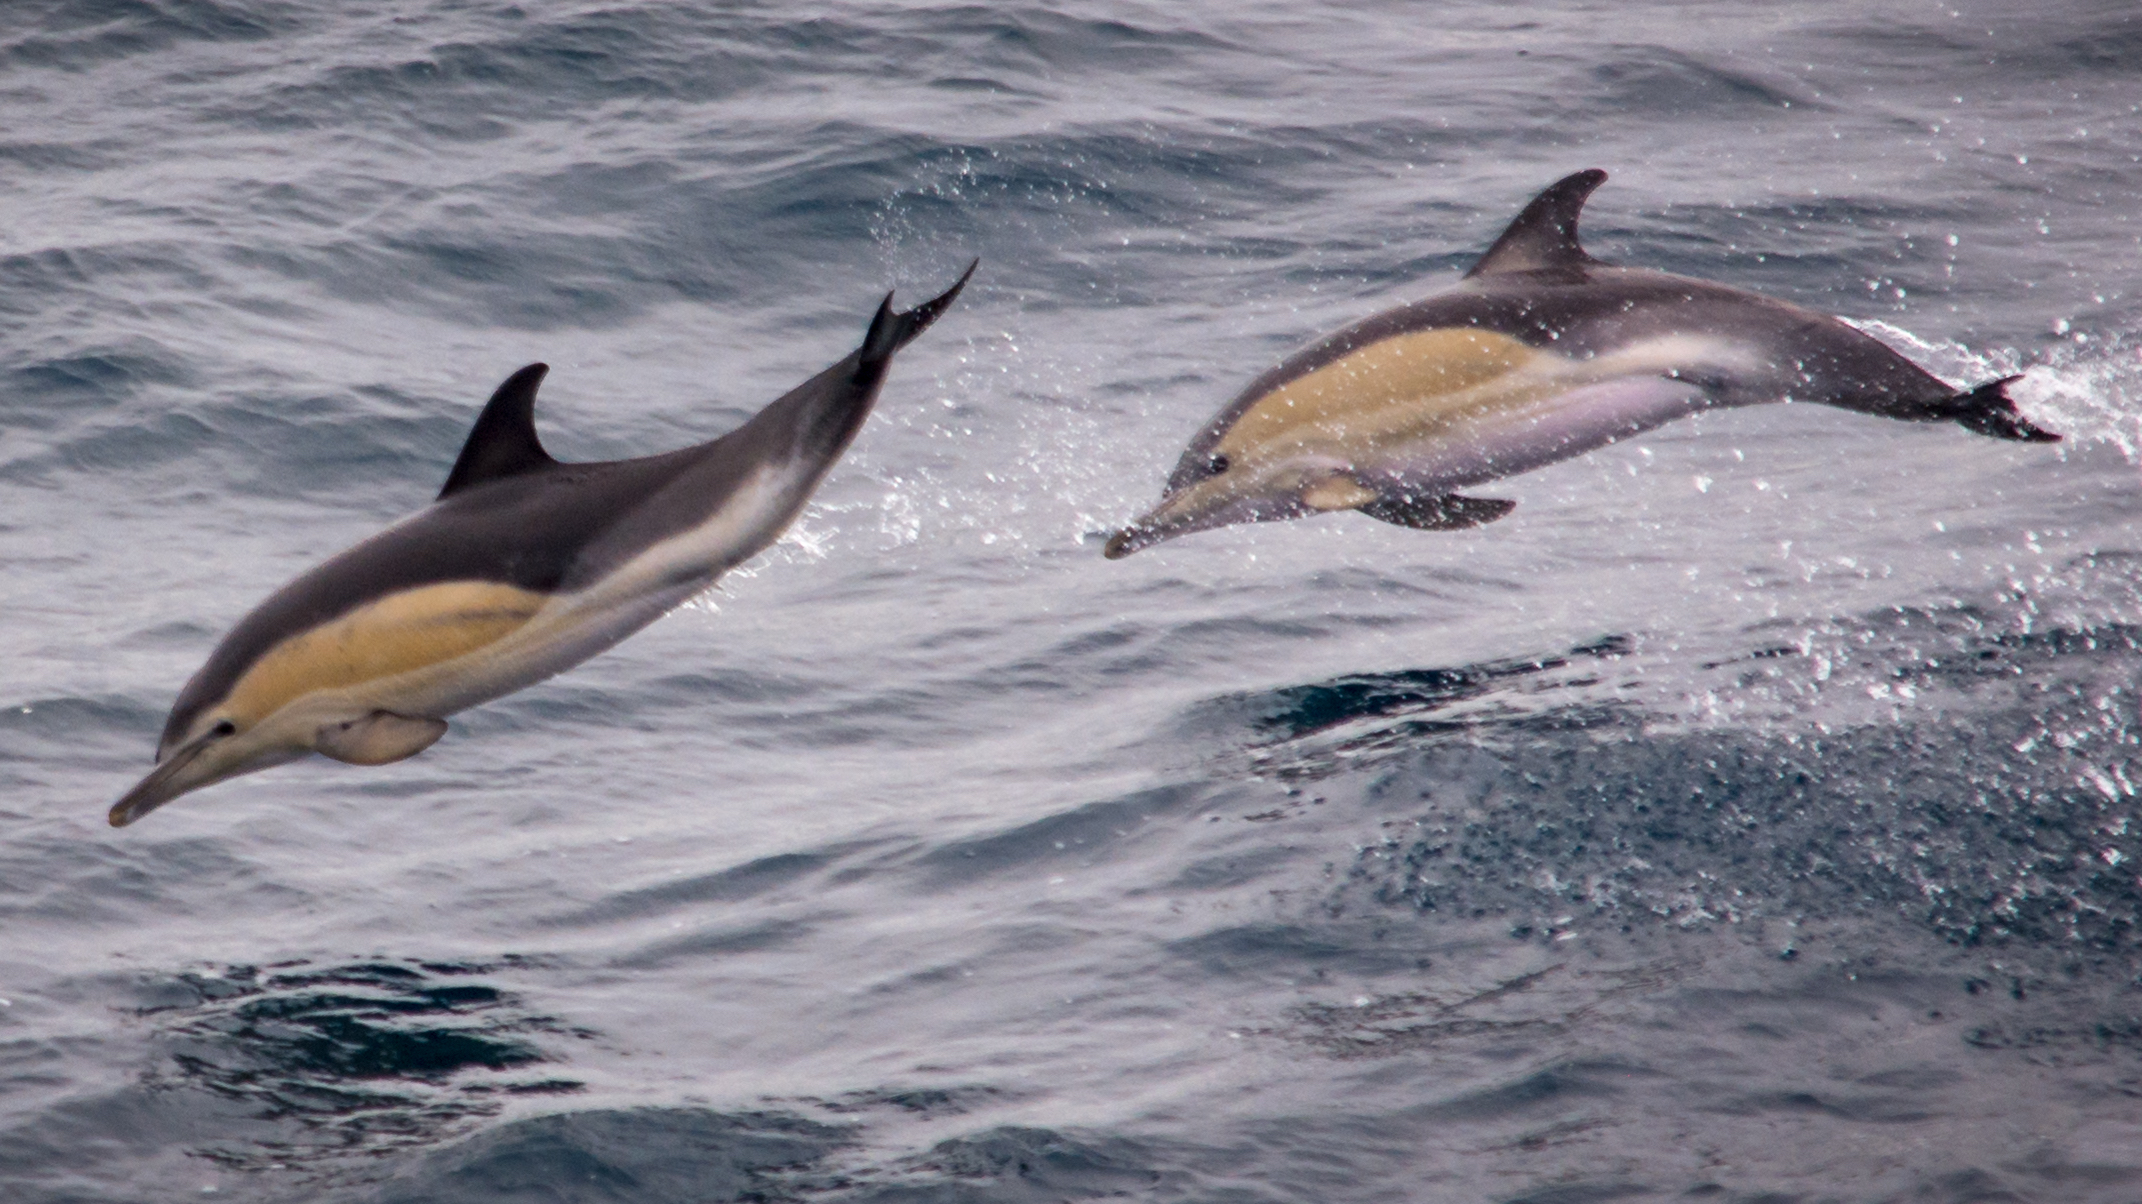 Common Dolphins are seen frequently in waters around Scilly.